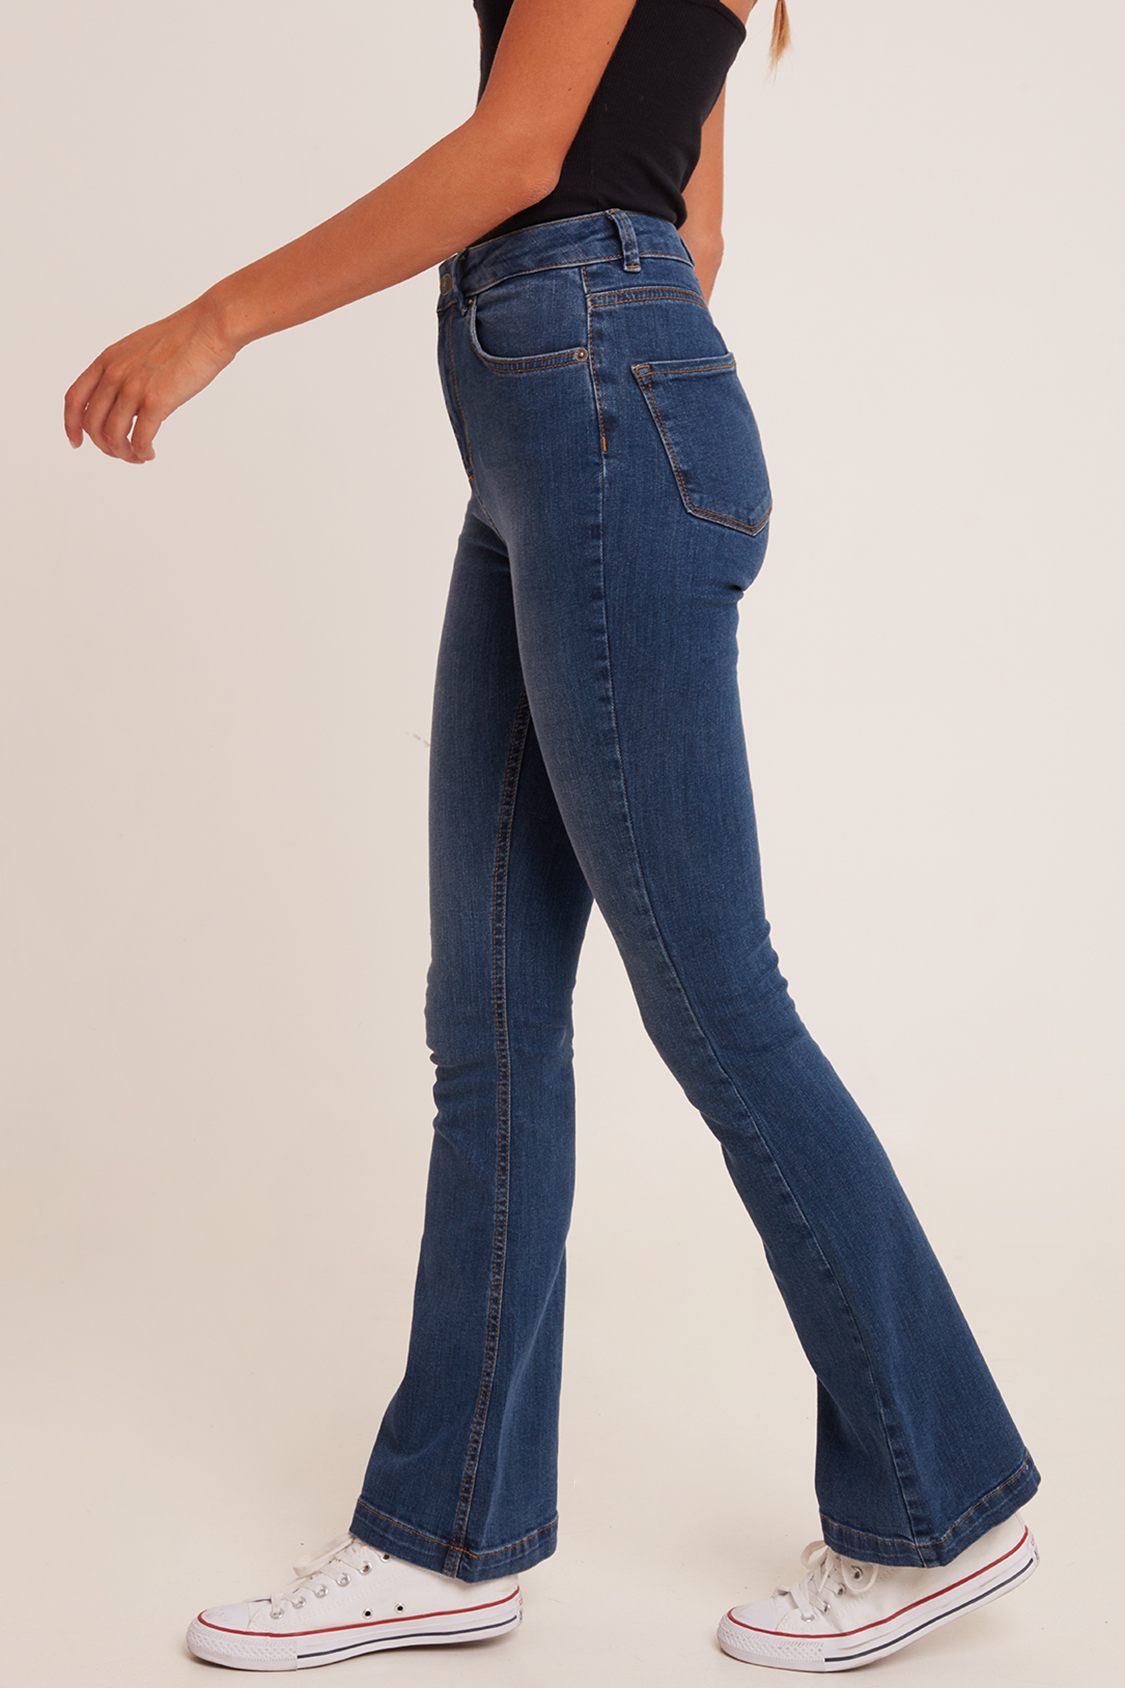 flaired jeans